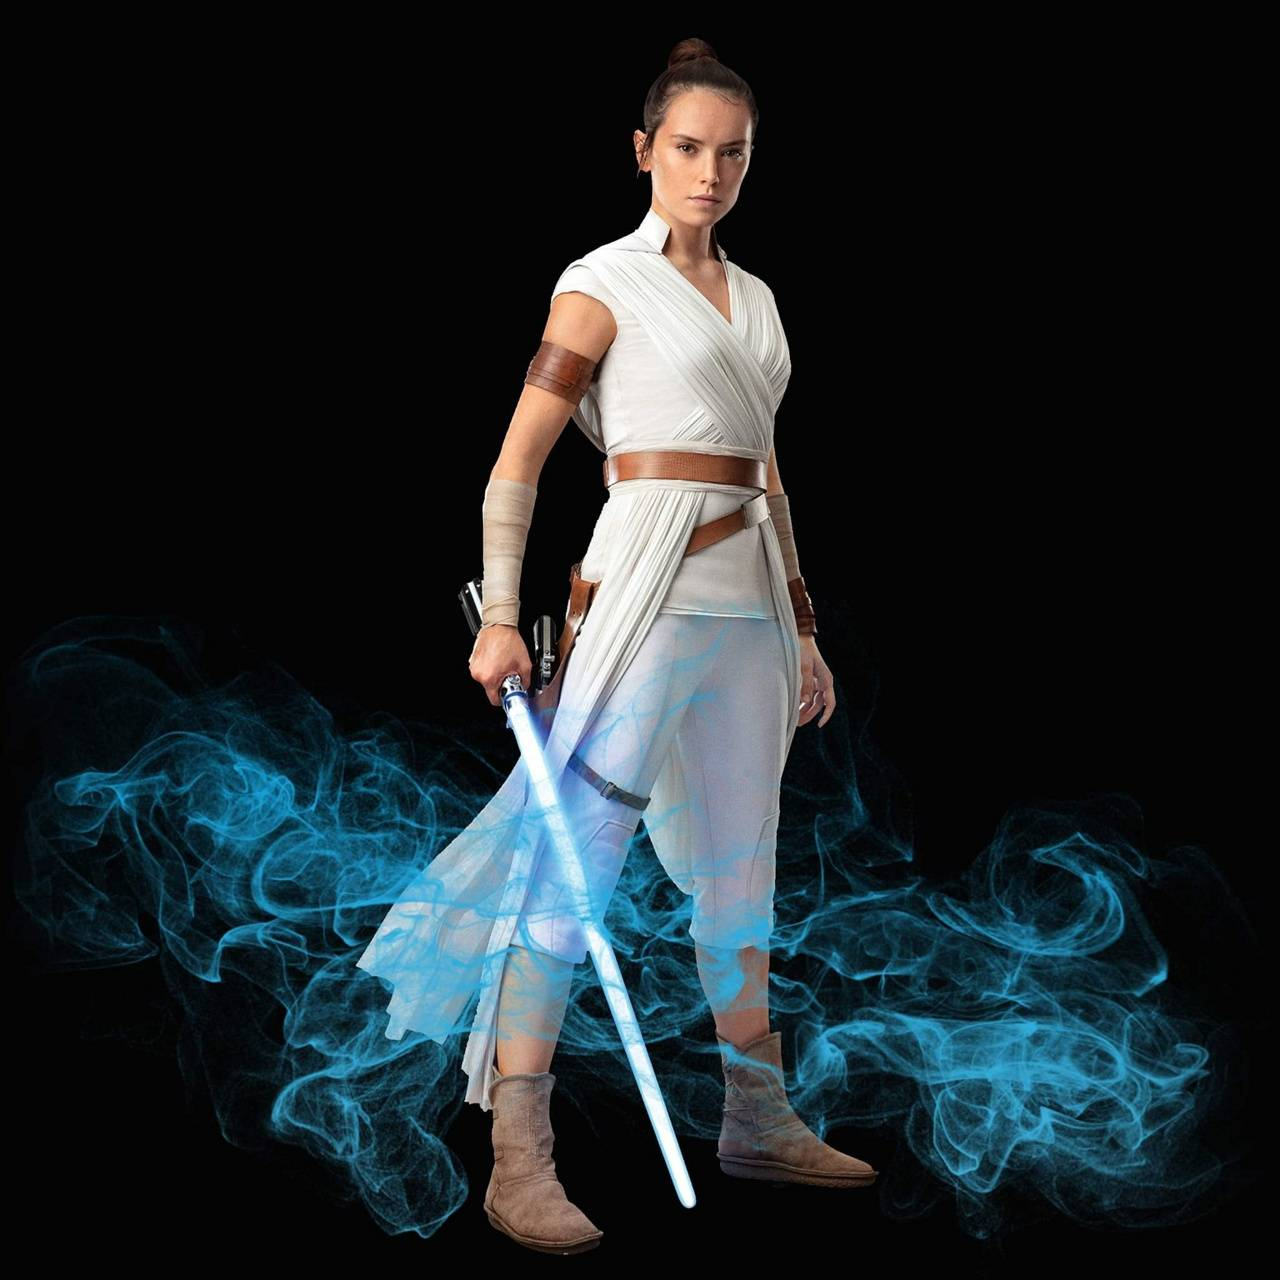 Star Wars Rey Wallpaper By Reaperrpnt E2 Free On Zedge